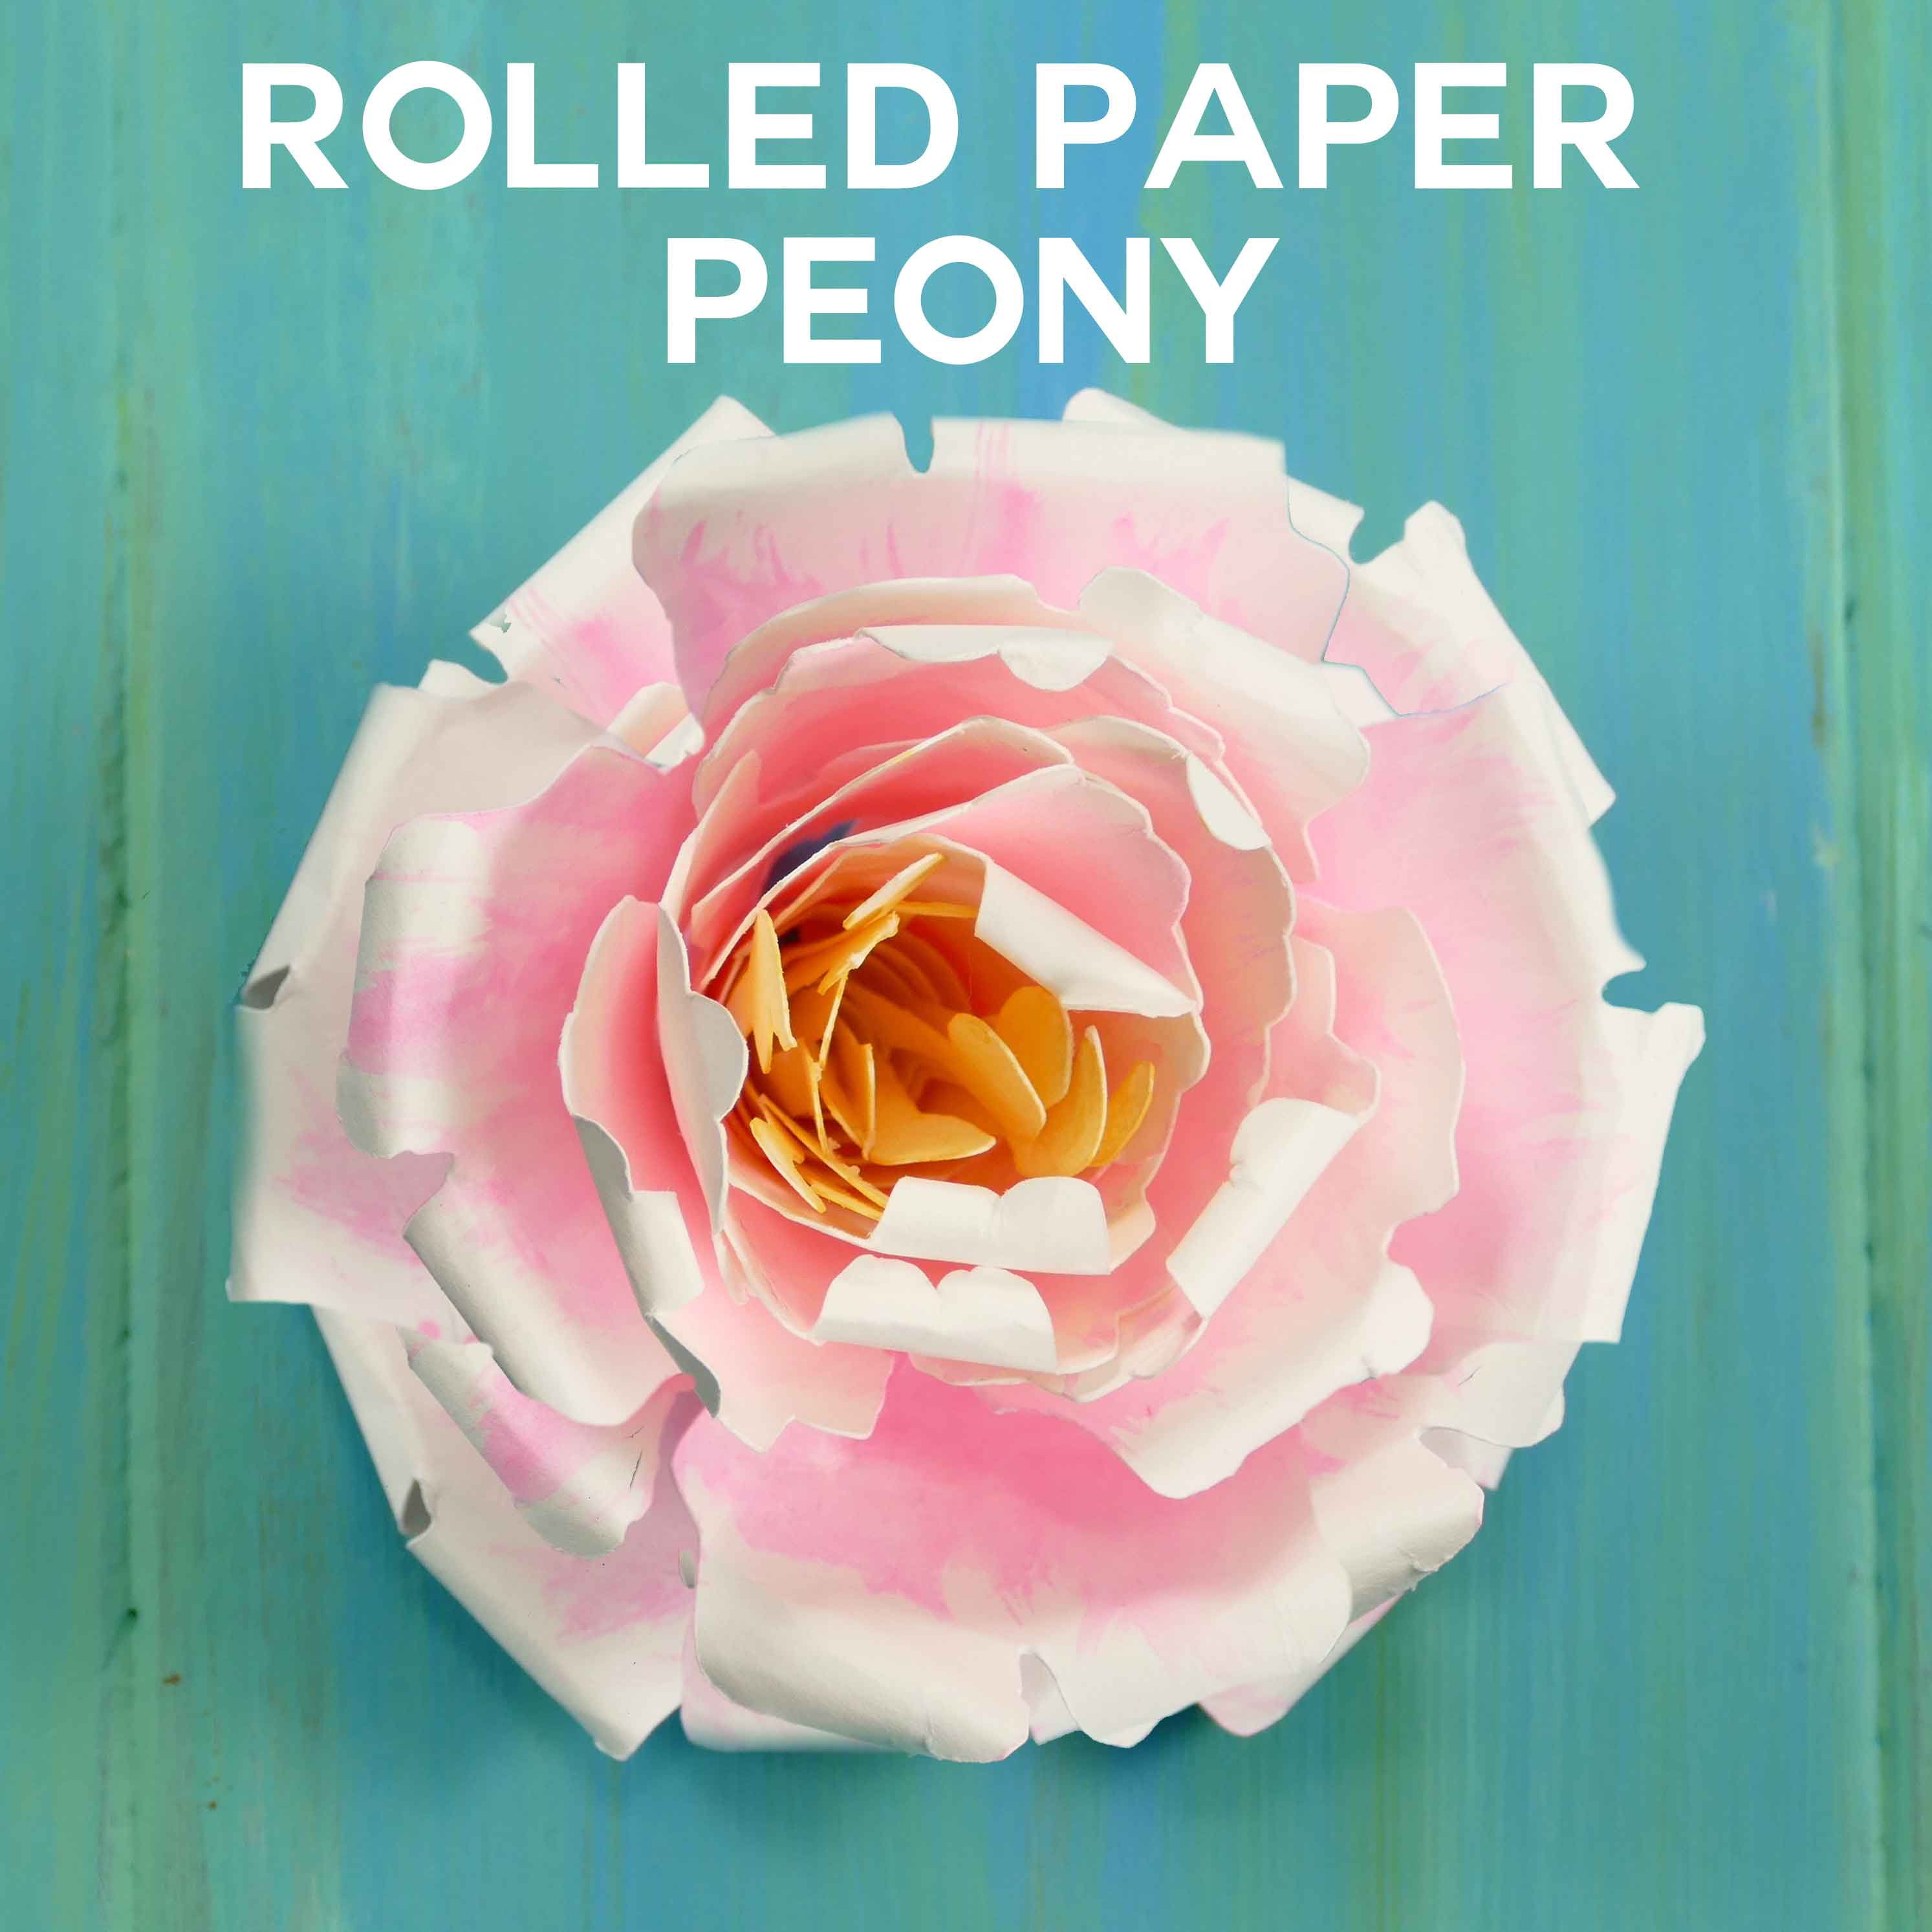 Rolled Paper Peony Flower | Quilled Flower | JenuineMom.com